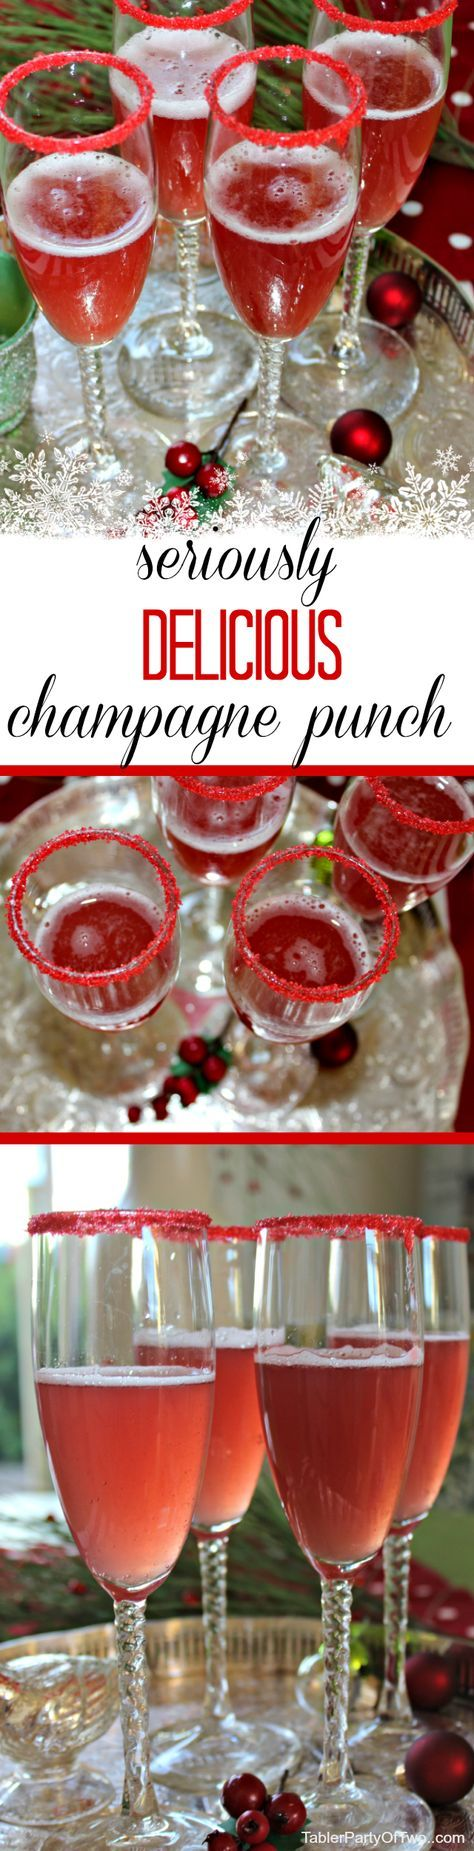 Easy non-alcoholic punch recipes for a crowd